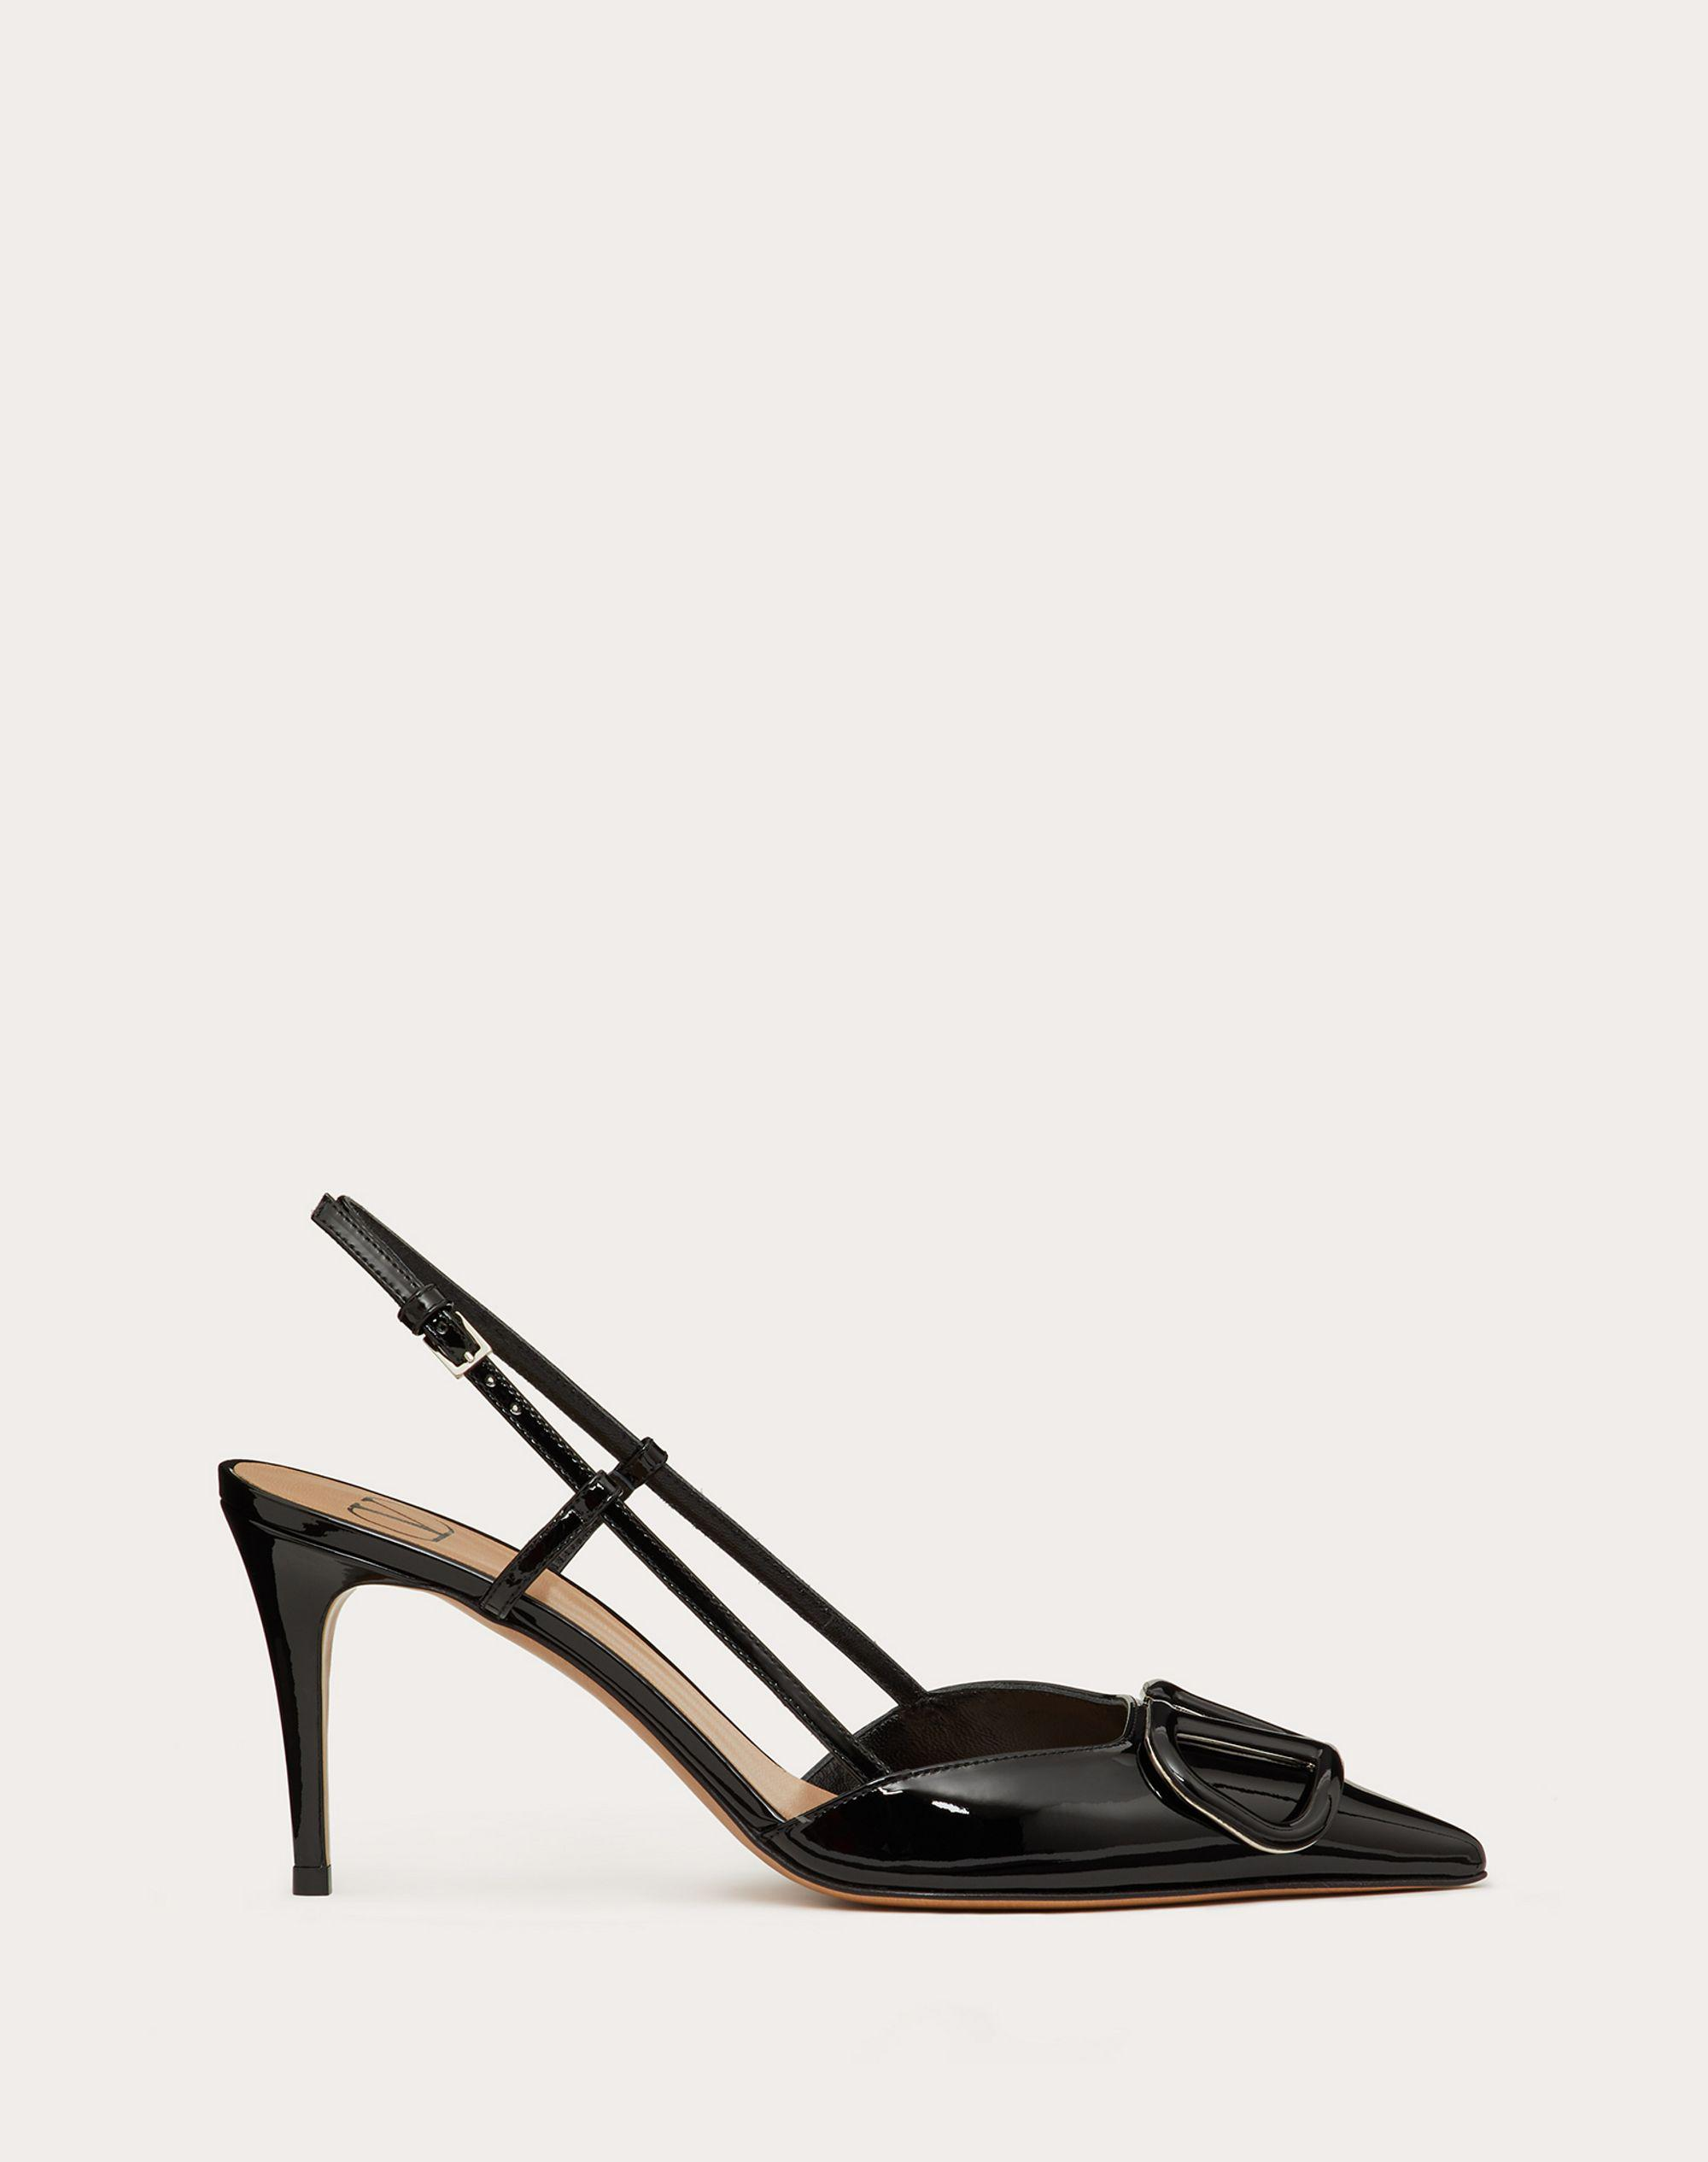 VLogo Signature Patent Leather Slingback Pump 80mm / 3.15 in.